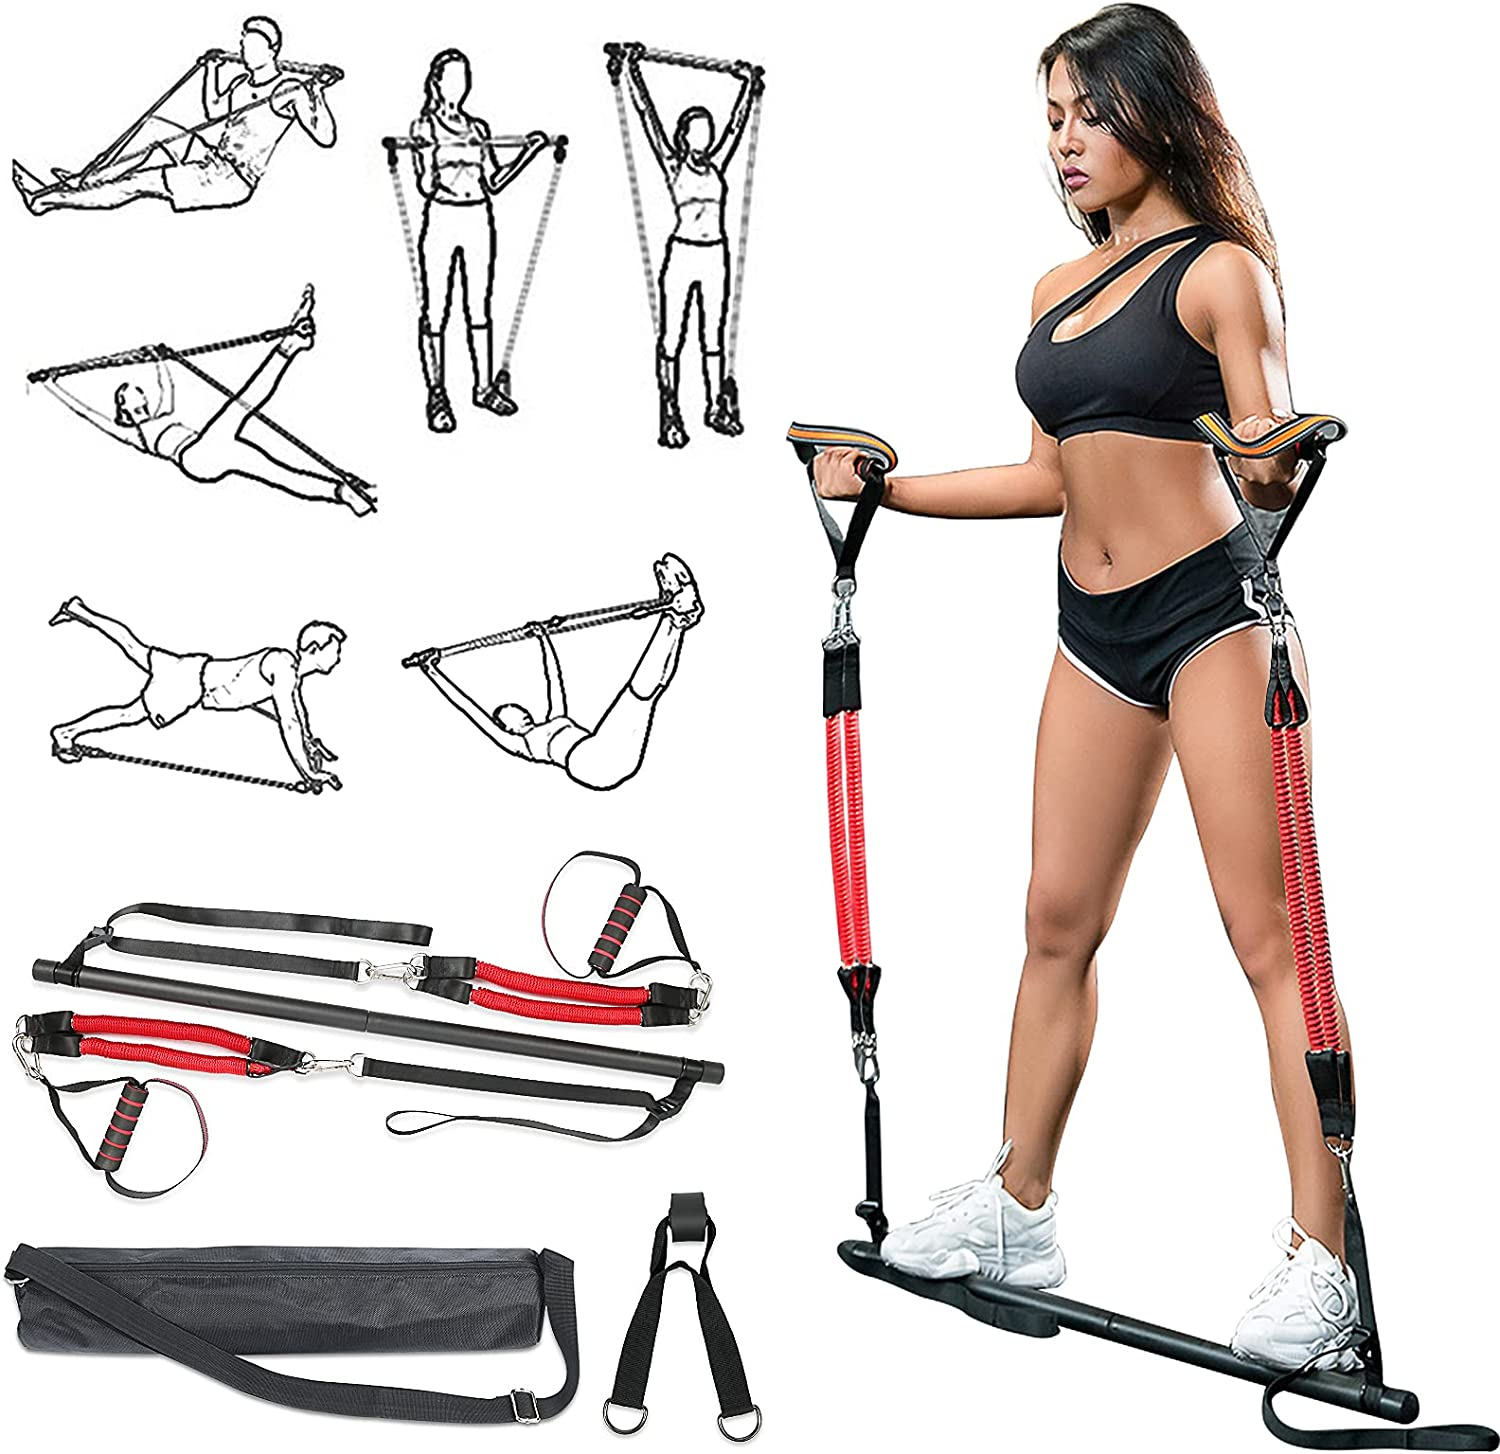 MODEREVE 60-180LBS Pilates Bar Kit with Resistance Bands, Home Squat Bar for Men & Women All-in-one Gym Workout for Full Body Fitness with Portable Bag & Door Anchor